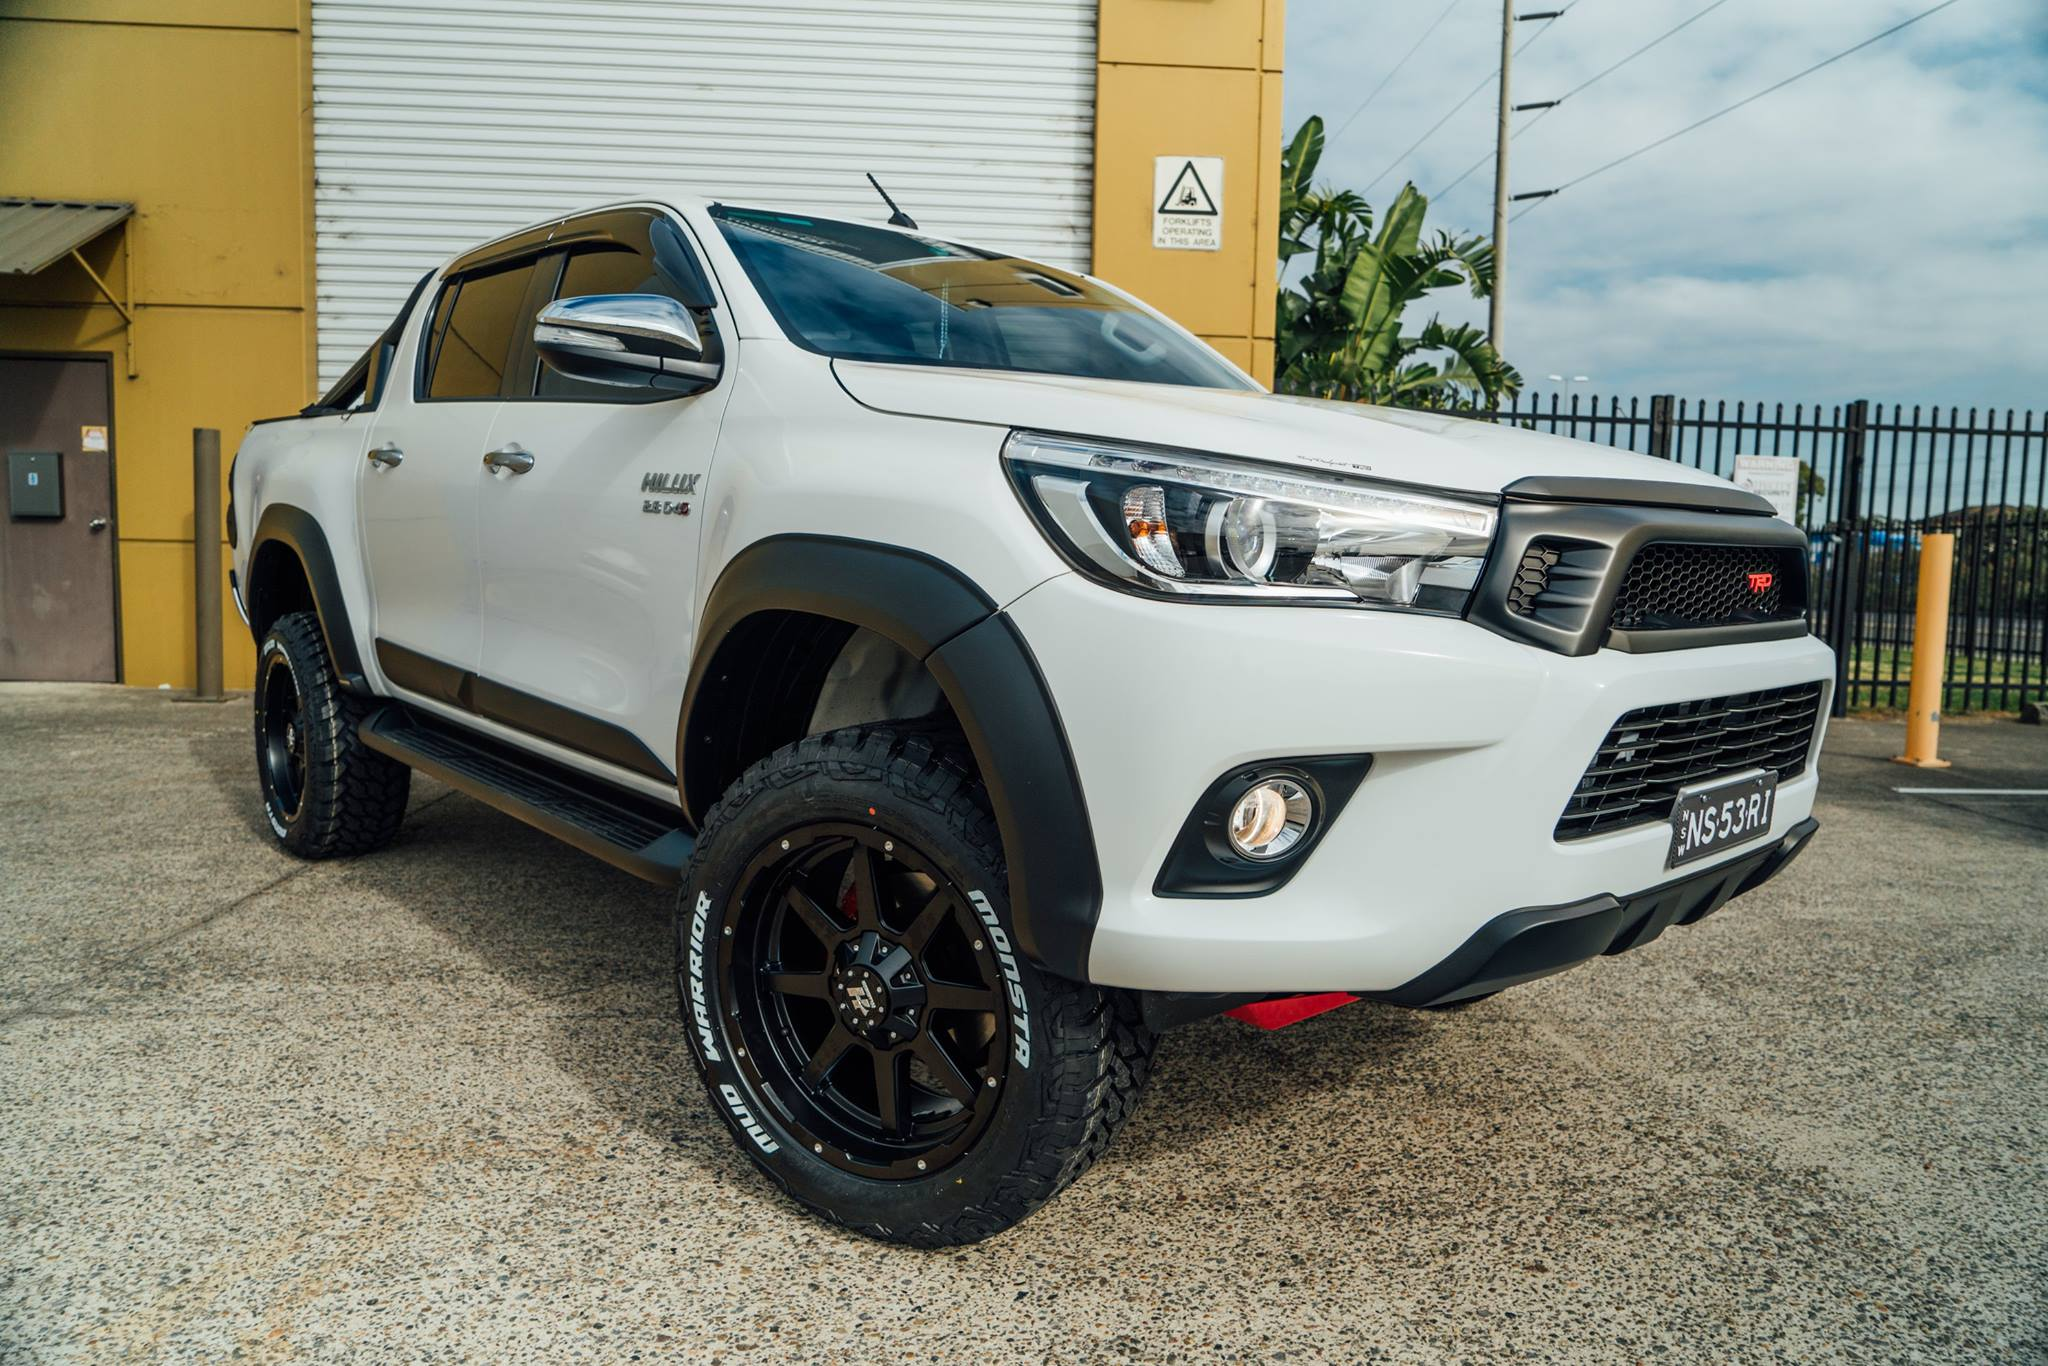 trd-hilux-to-be-upgraded-in-suspension-wheels-and-tyres-so-we-set-him-up-with-a-set-of-20x10-matte-black-hussla-stealths-and-wrapped-those-in-a-huge-profile-27555r2